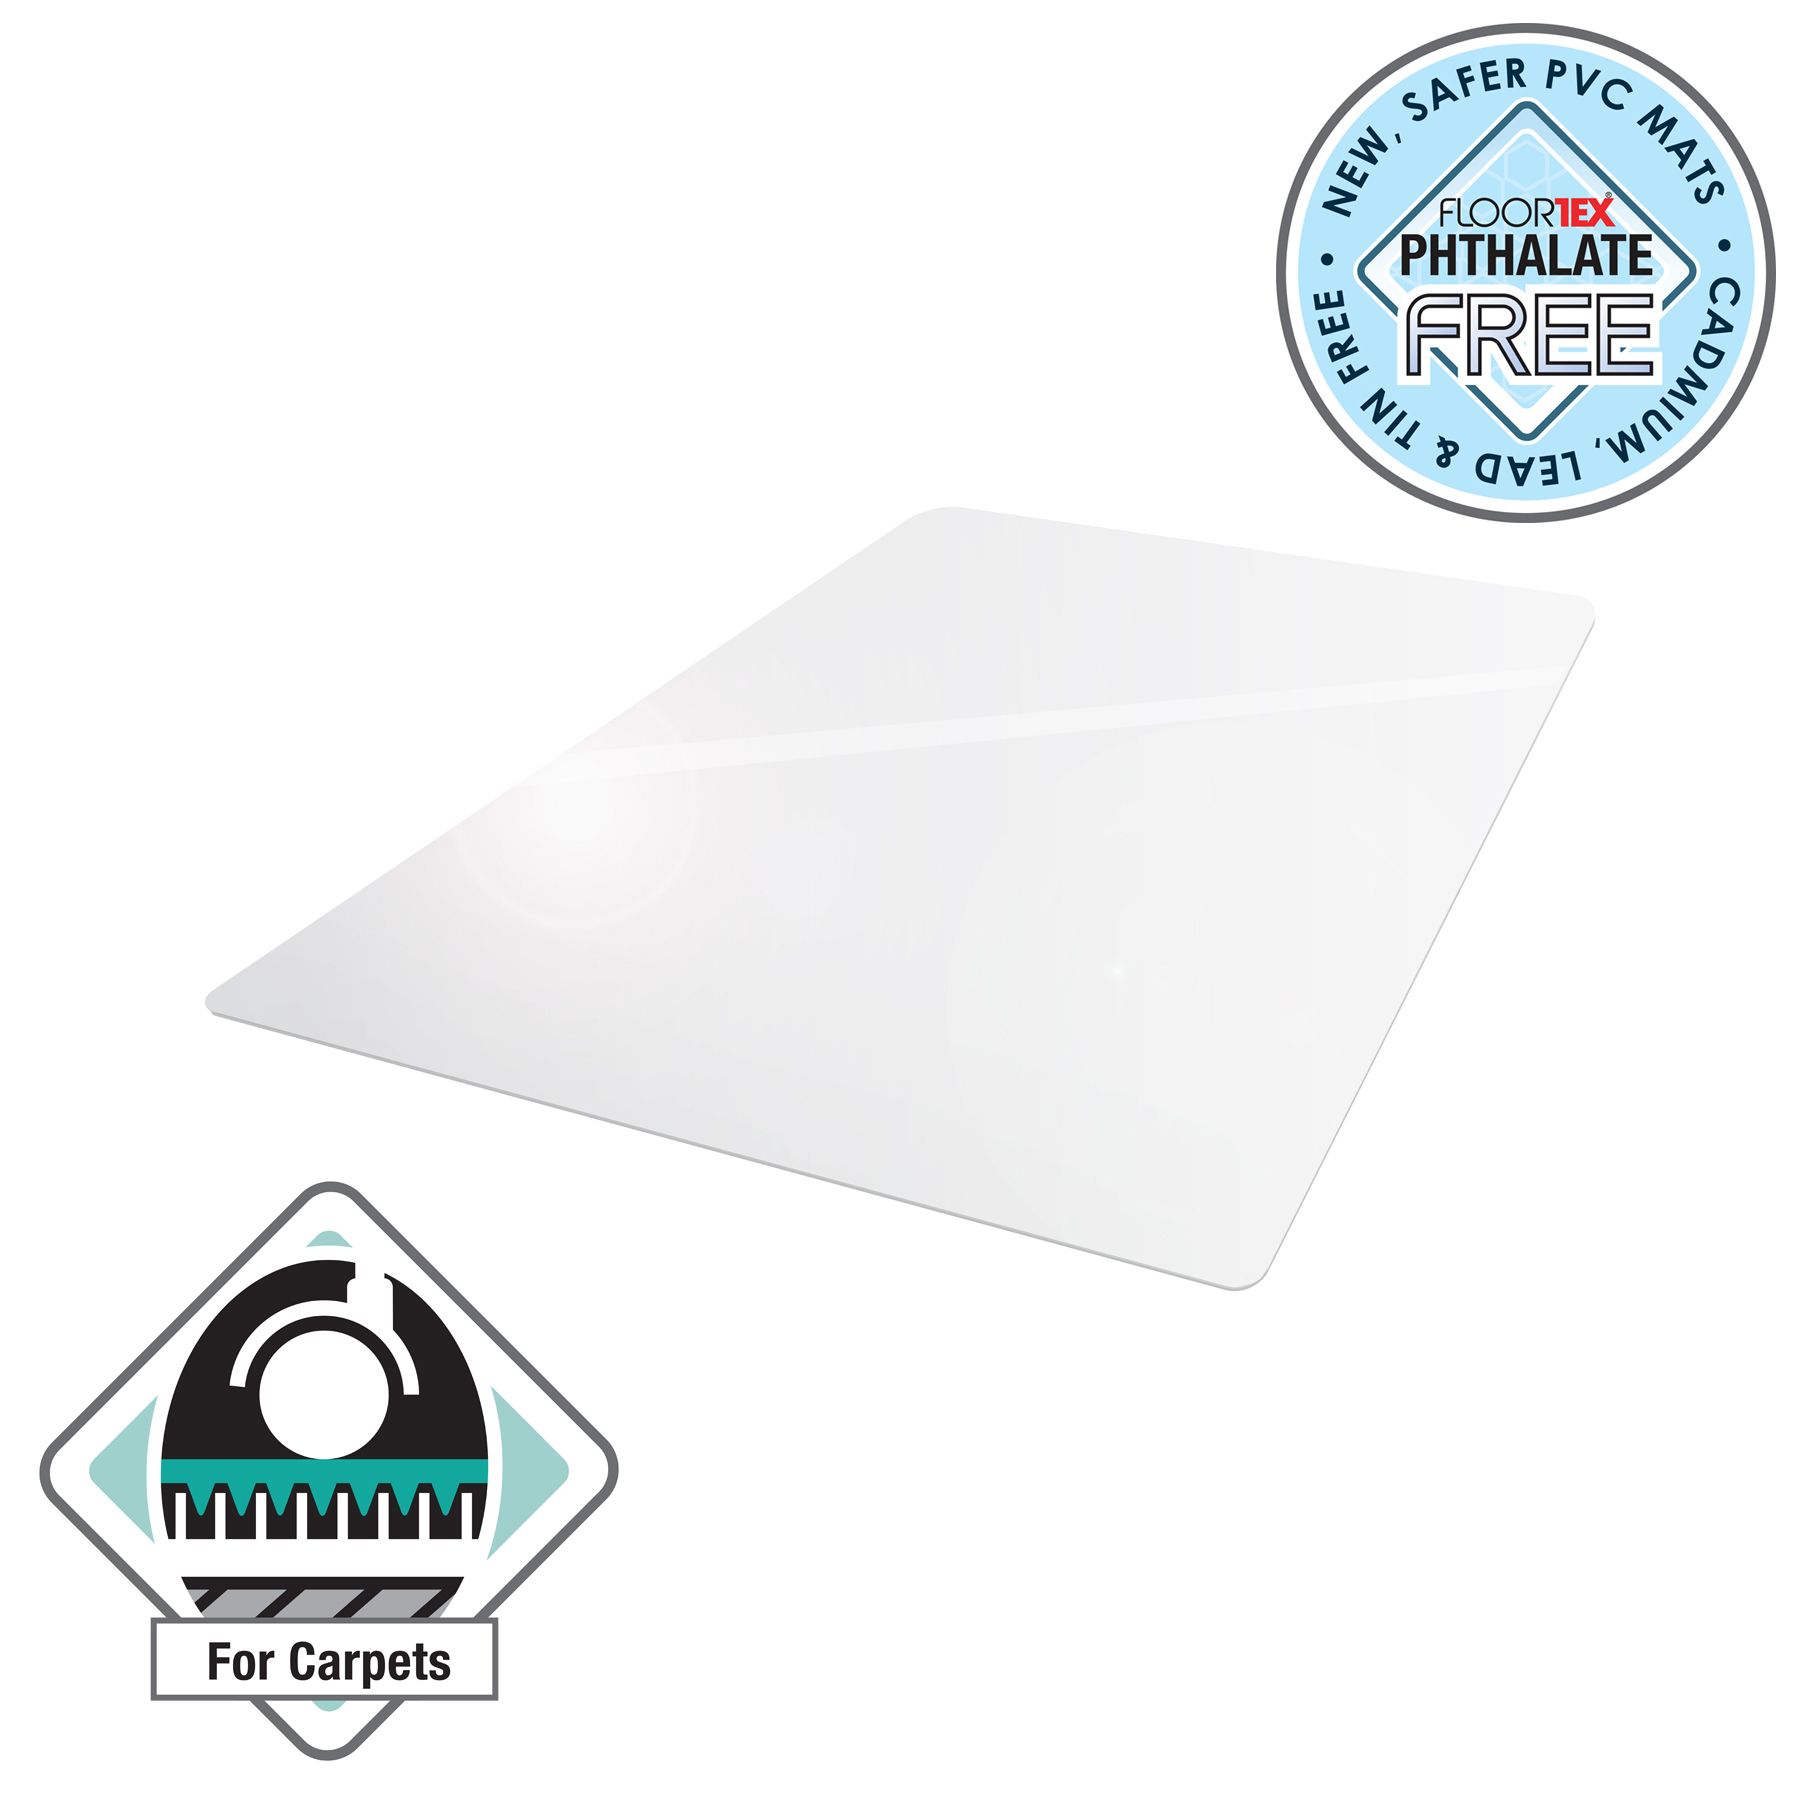 Cleartex Advantagemat Chair Mat For Carpets Rectangular 1200x1500mm Clear Ref FCVPF1115225EV